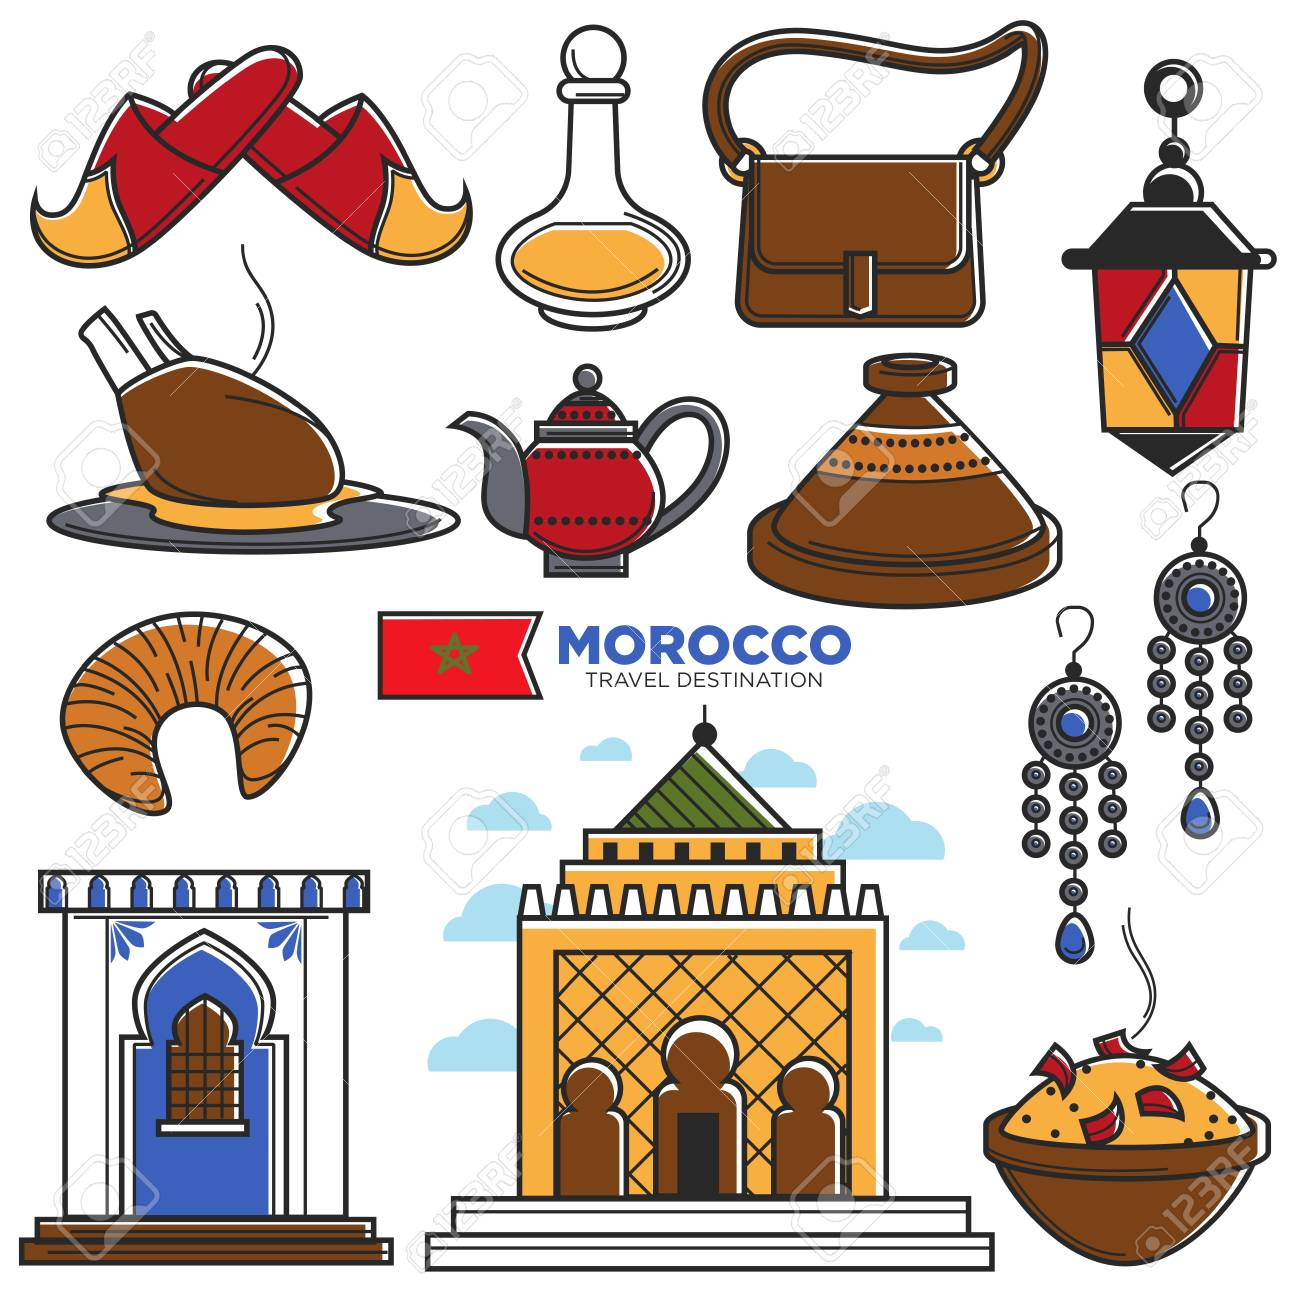 Morocco tourism travel famous symbols and tourist morrocan morocco tourism travel famous symbols and tourist morrocan landmarks vector icons stock vector 87627106 biocorpaavc Images